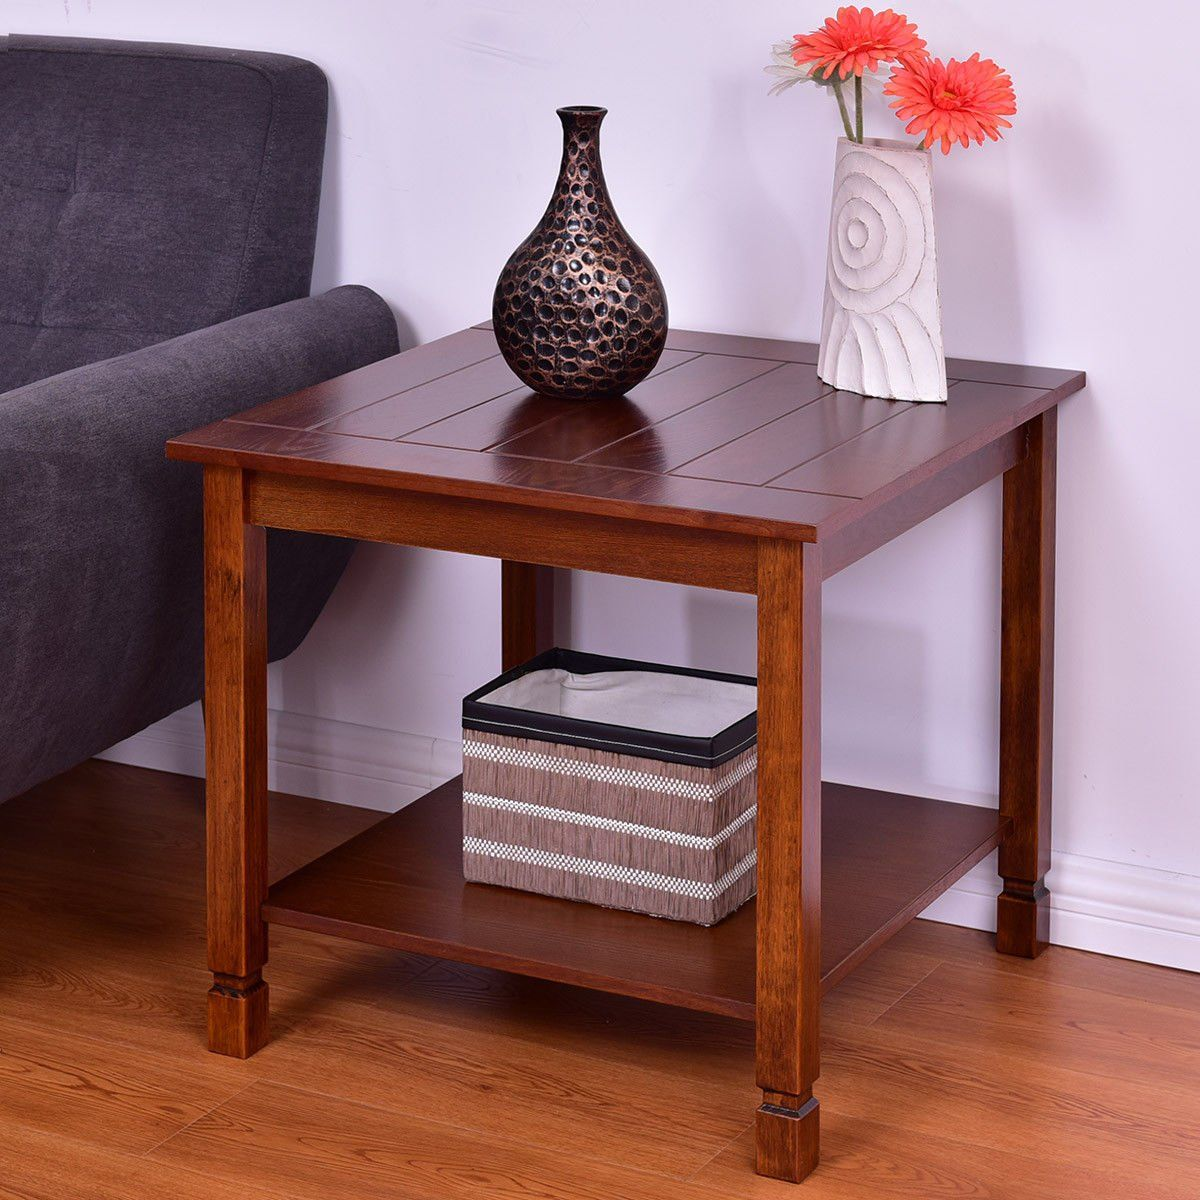 Special Offers Giantex Pine Wood End Table W Shelf 2 Tier Side Storage Bedside Sofa Table Side Table Wood Wood Side Table Living Room Living Room End Tables Living room side tables